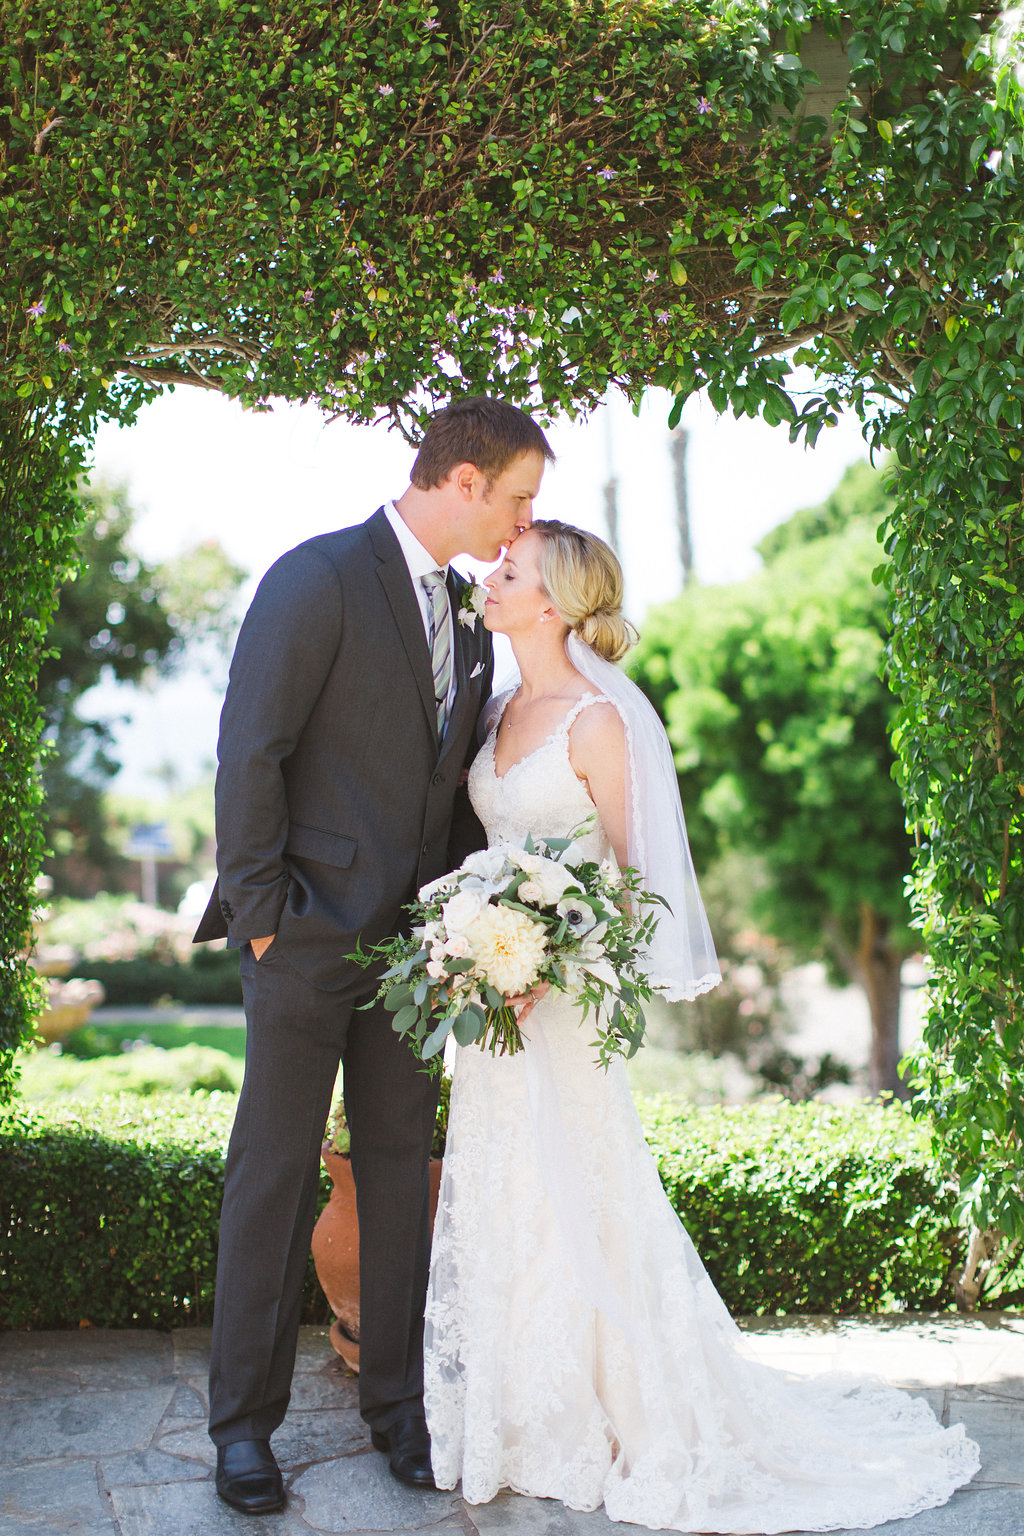 The Thursday Club Blush & ivory, garden romantic wedding   by San Diego wedding florist, Compass Floral.